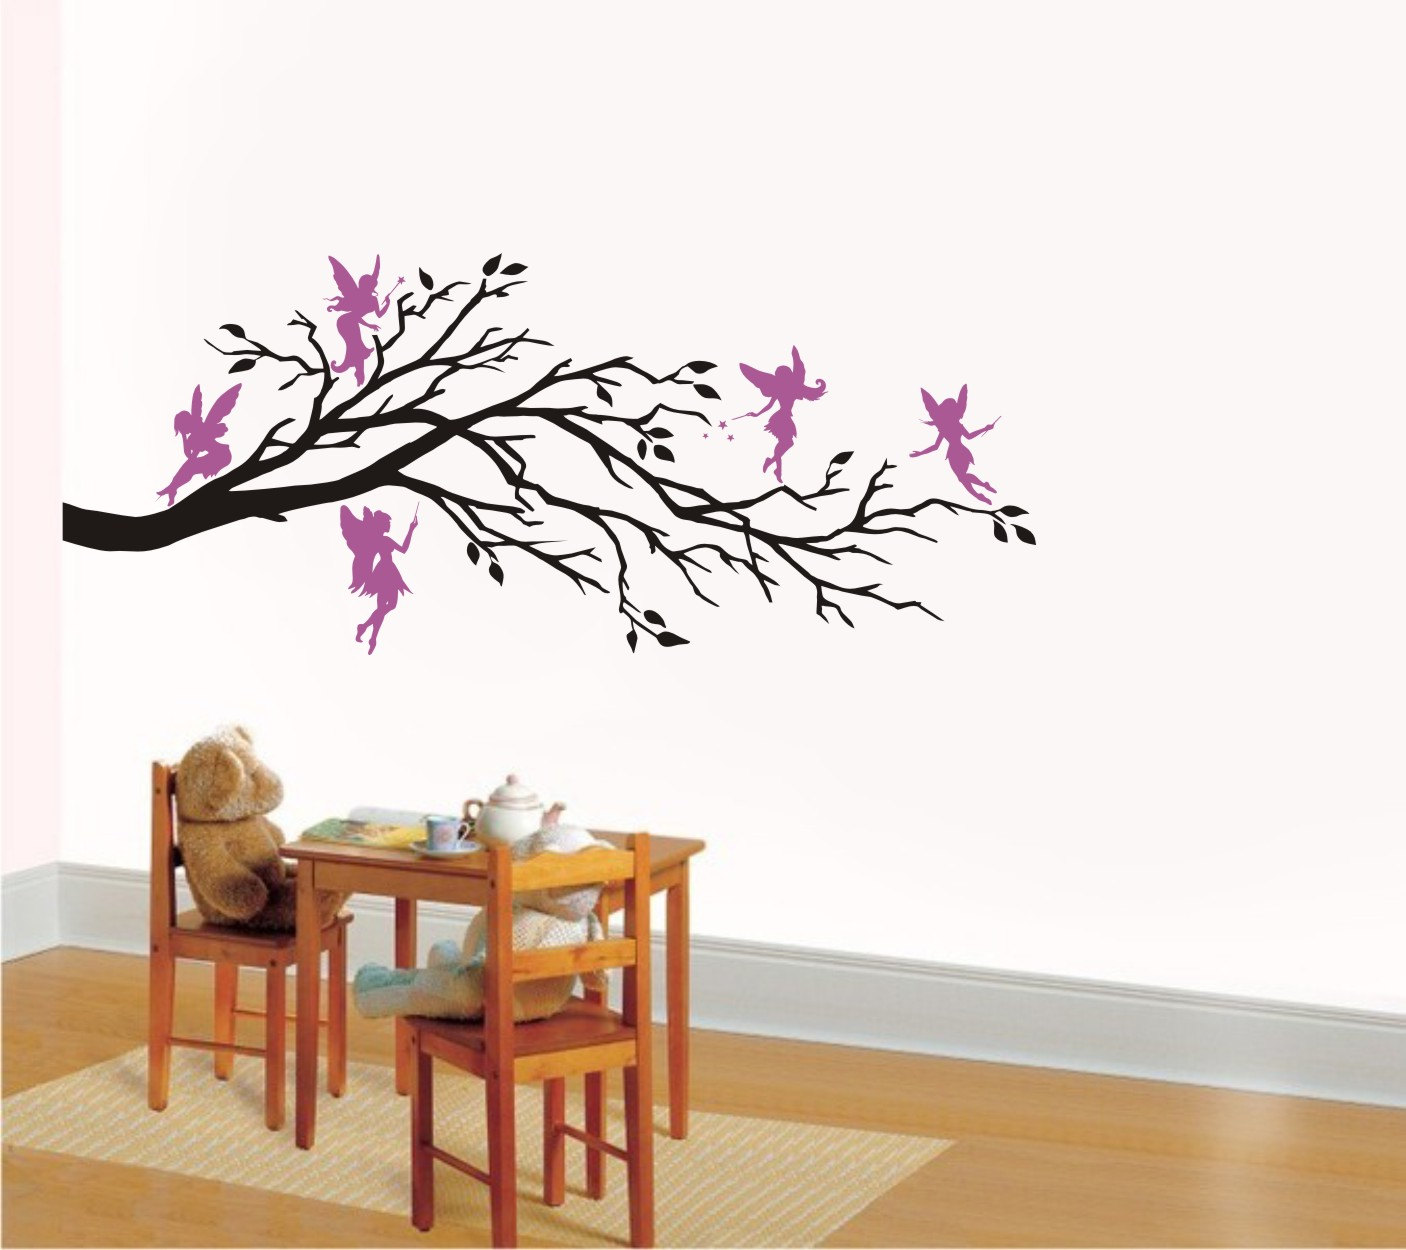 Vinyl Wall Art wall art vinyl decal fantasy five fairies and branch, nursery